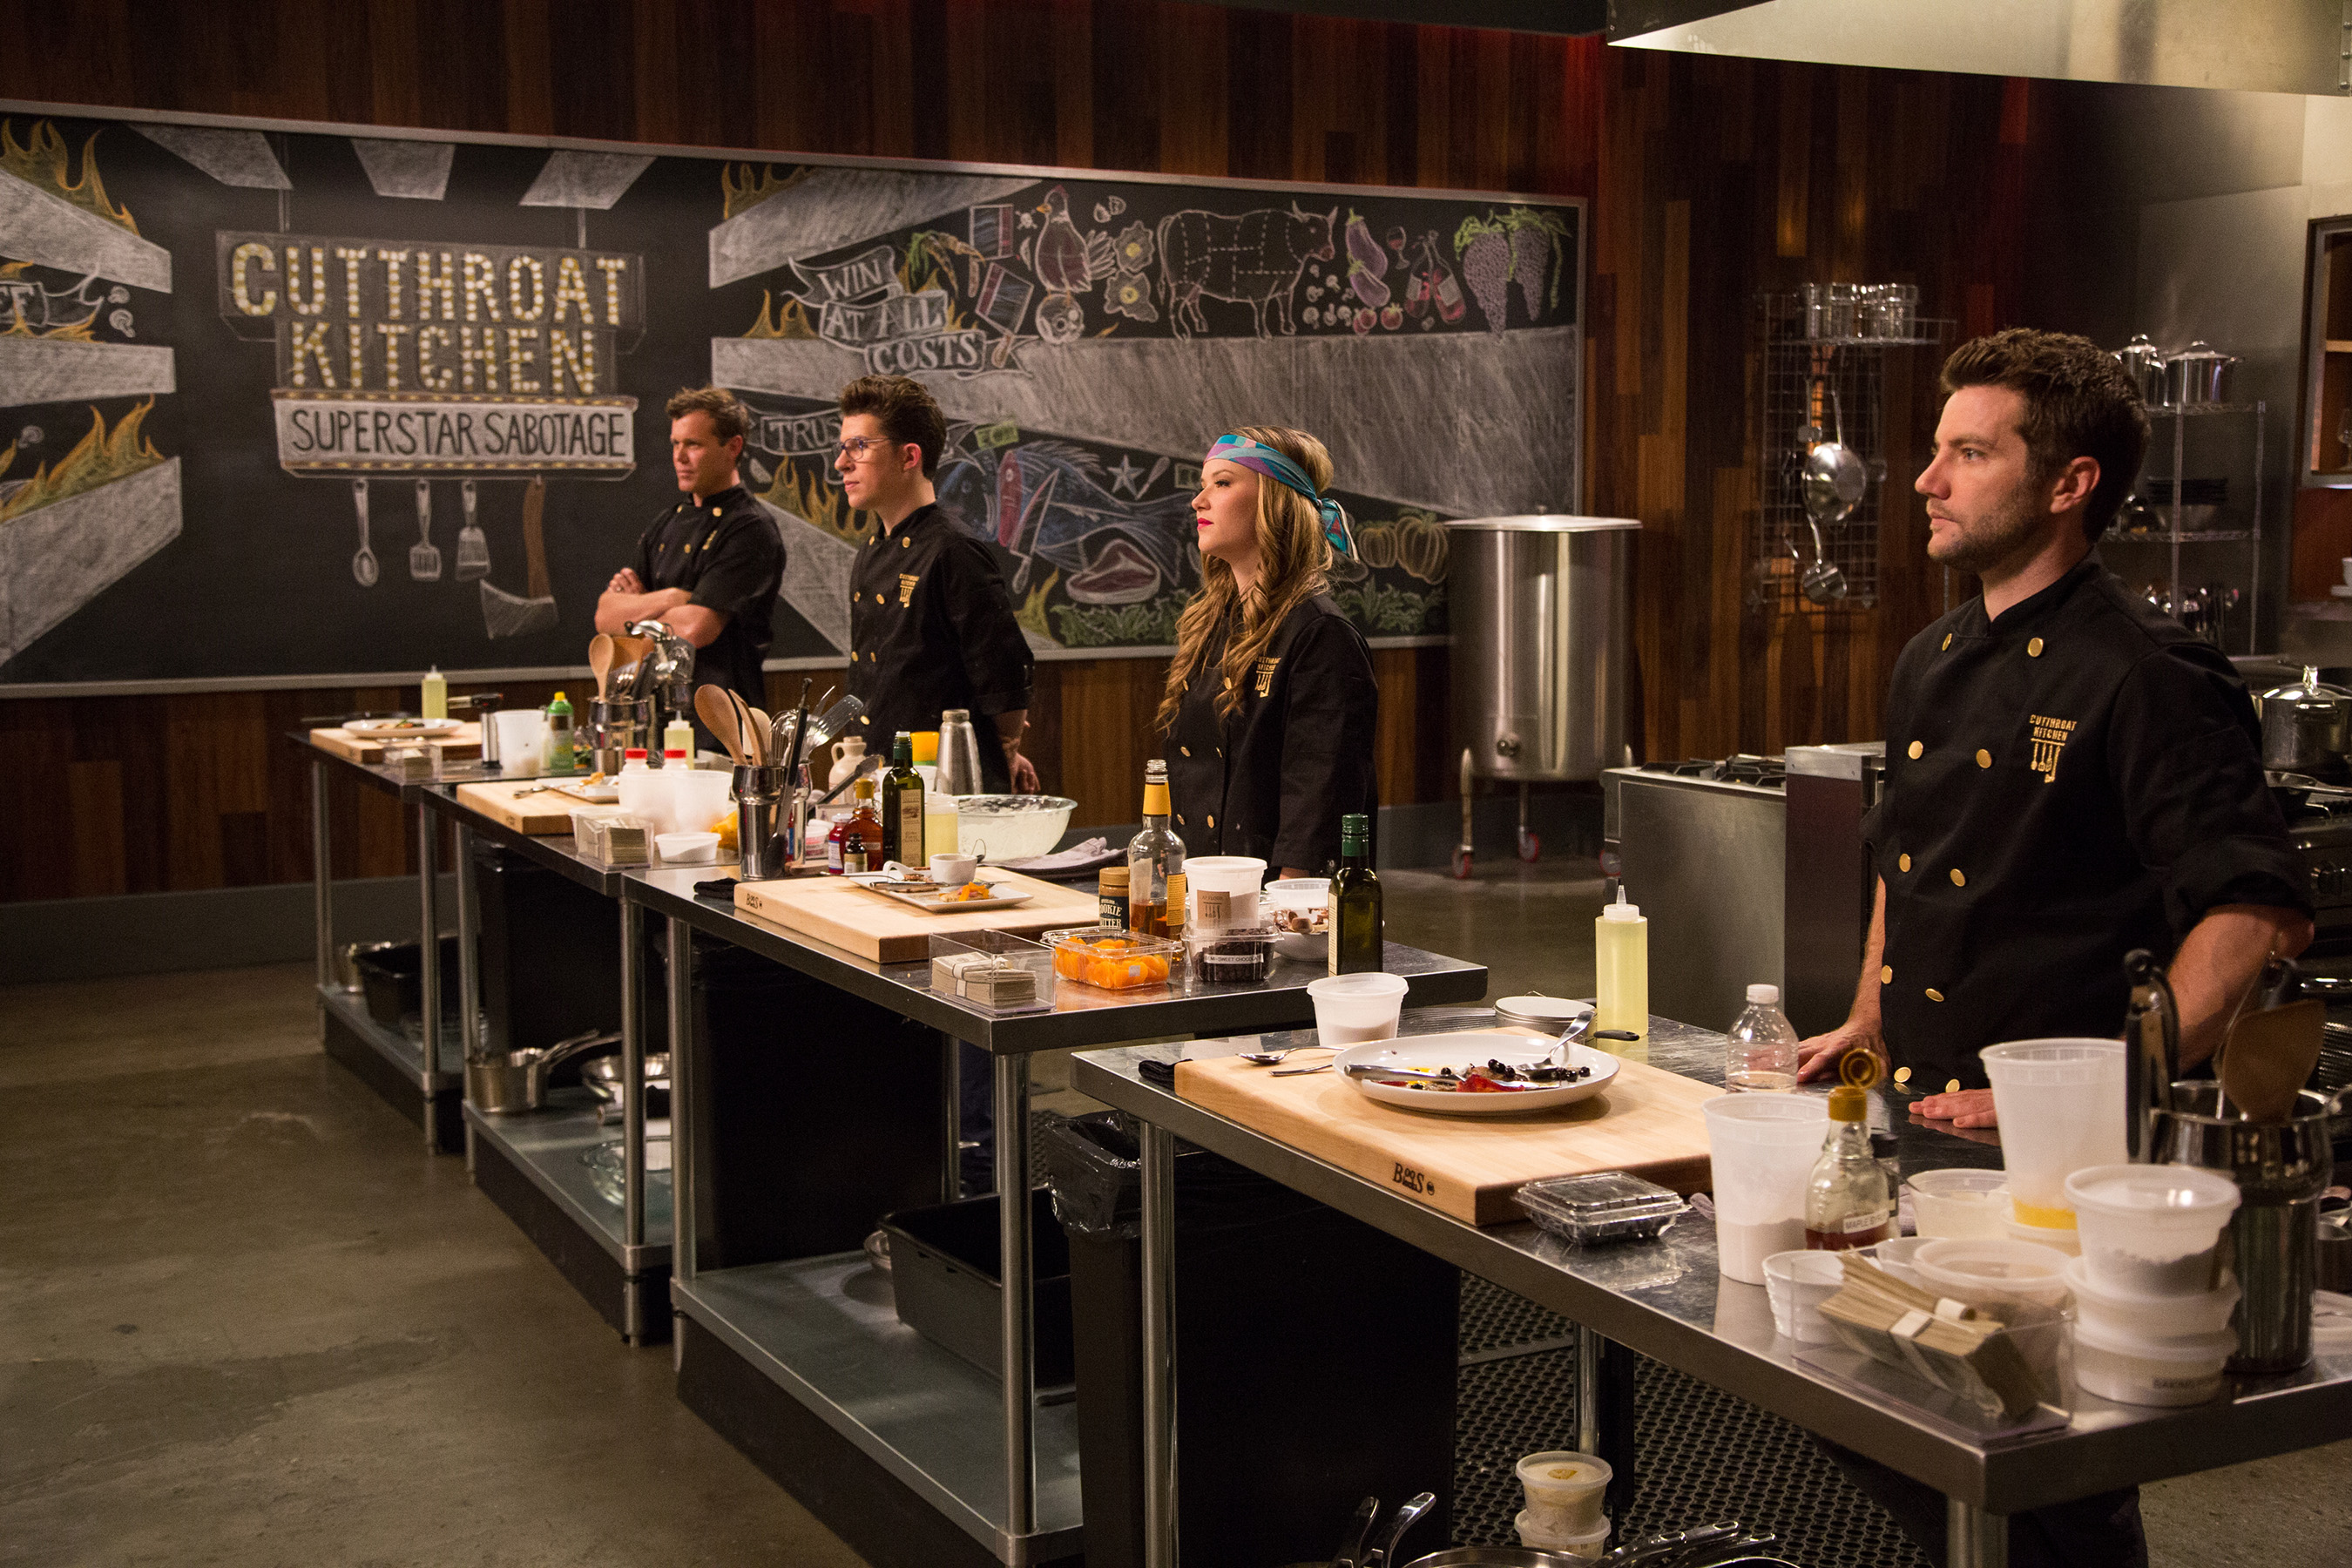 Cutthroat kitchen superstar sabotage tournament - Show picture of kitchen ...